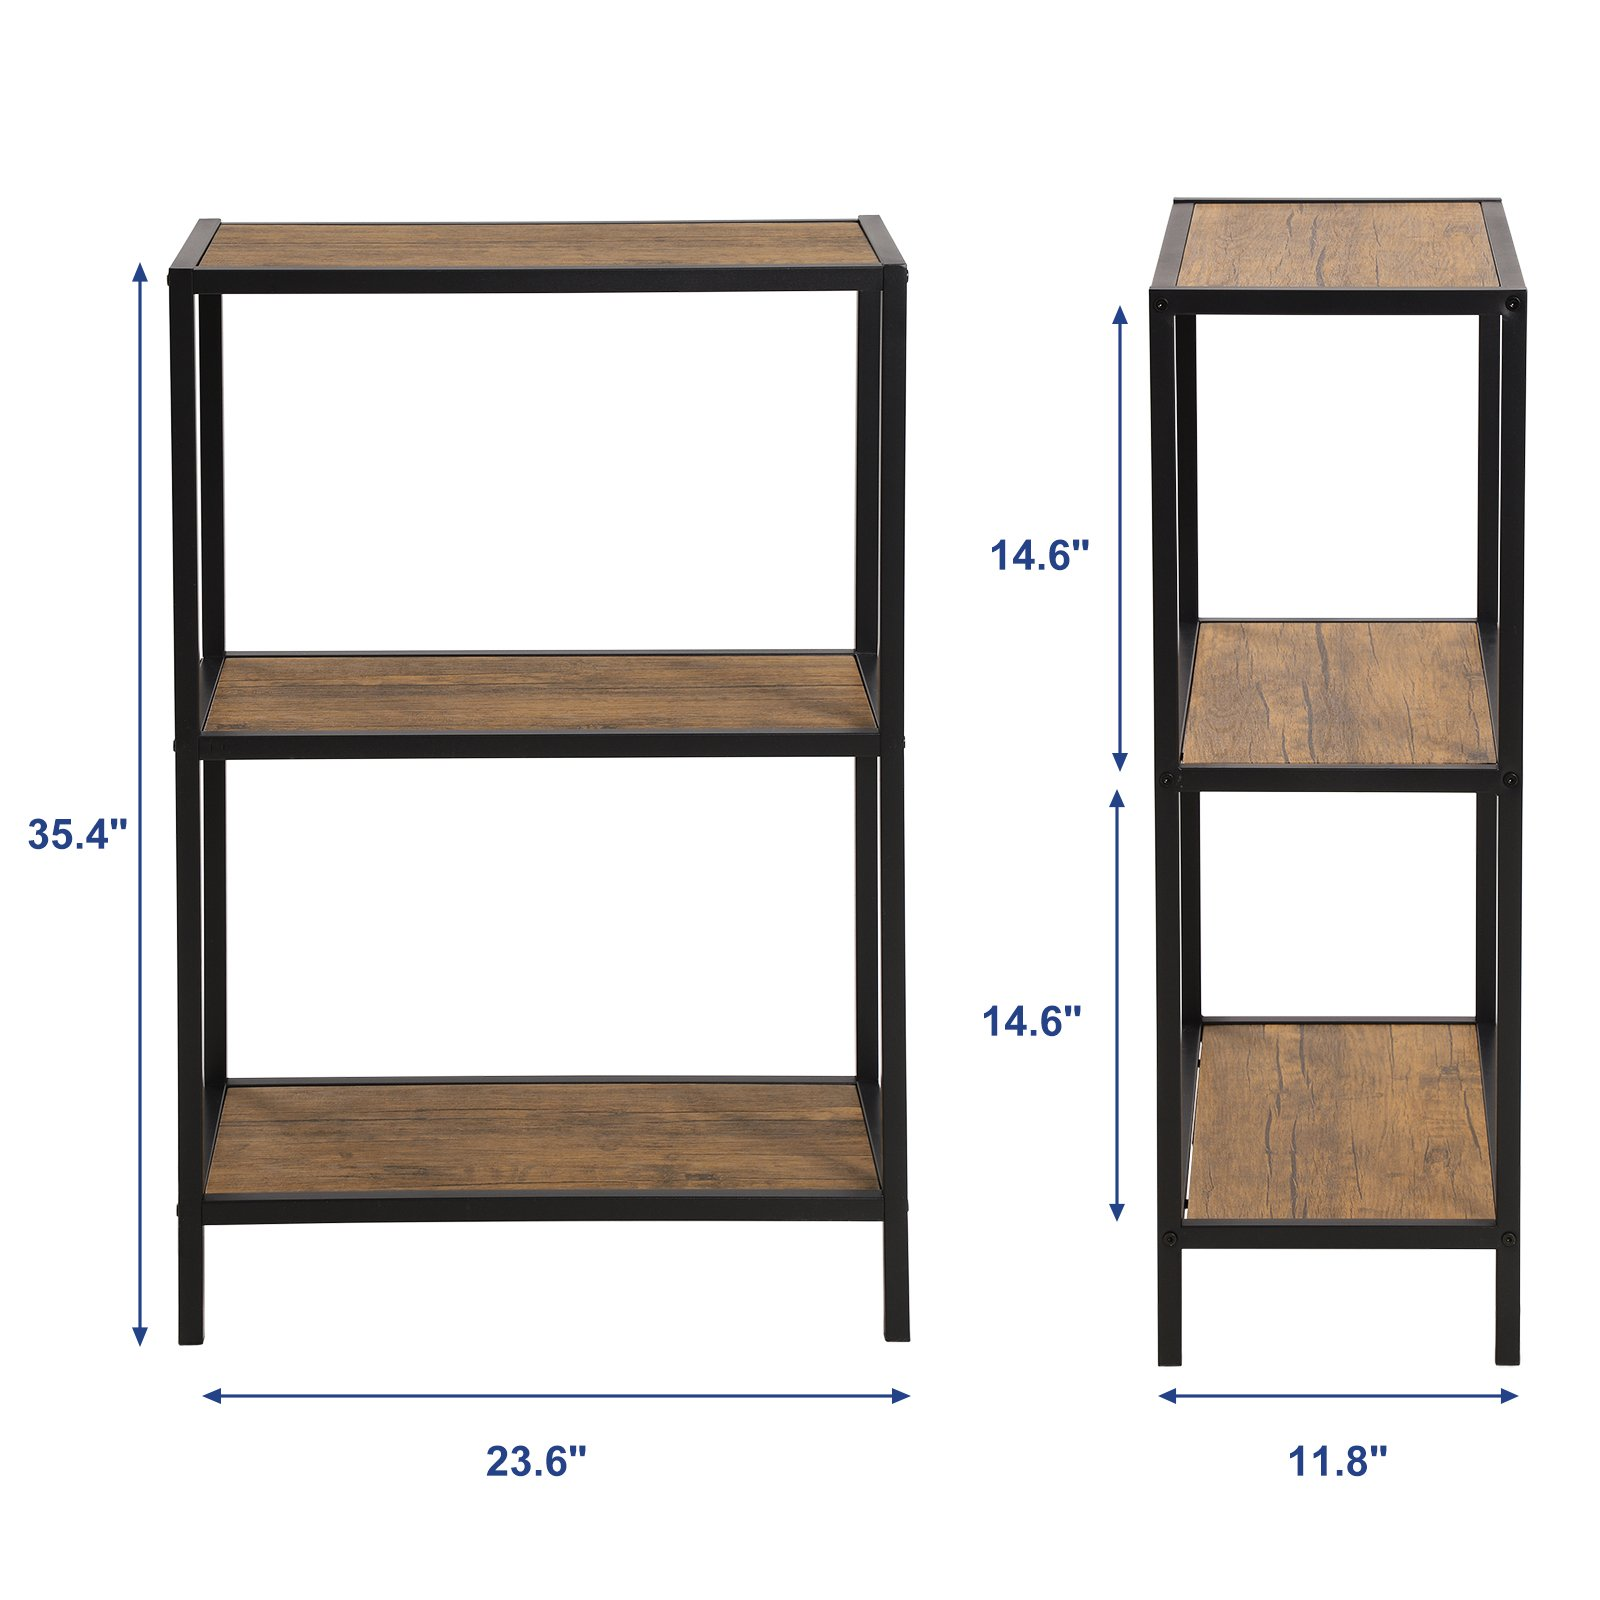 SONGMICS 3-Tier Storage Shelf Rack, Multifunctional Bookcase, Metal Frame Display Rack,Shelving Unit for Kitchen, Living Room,Rustic, ULSS90BX by SONGMICS (Image #6)